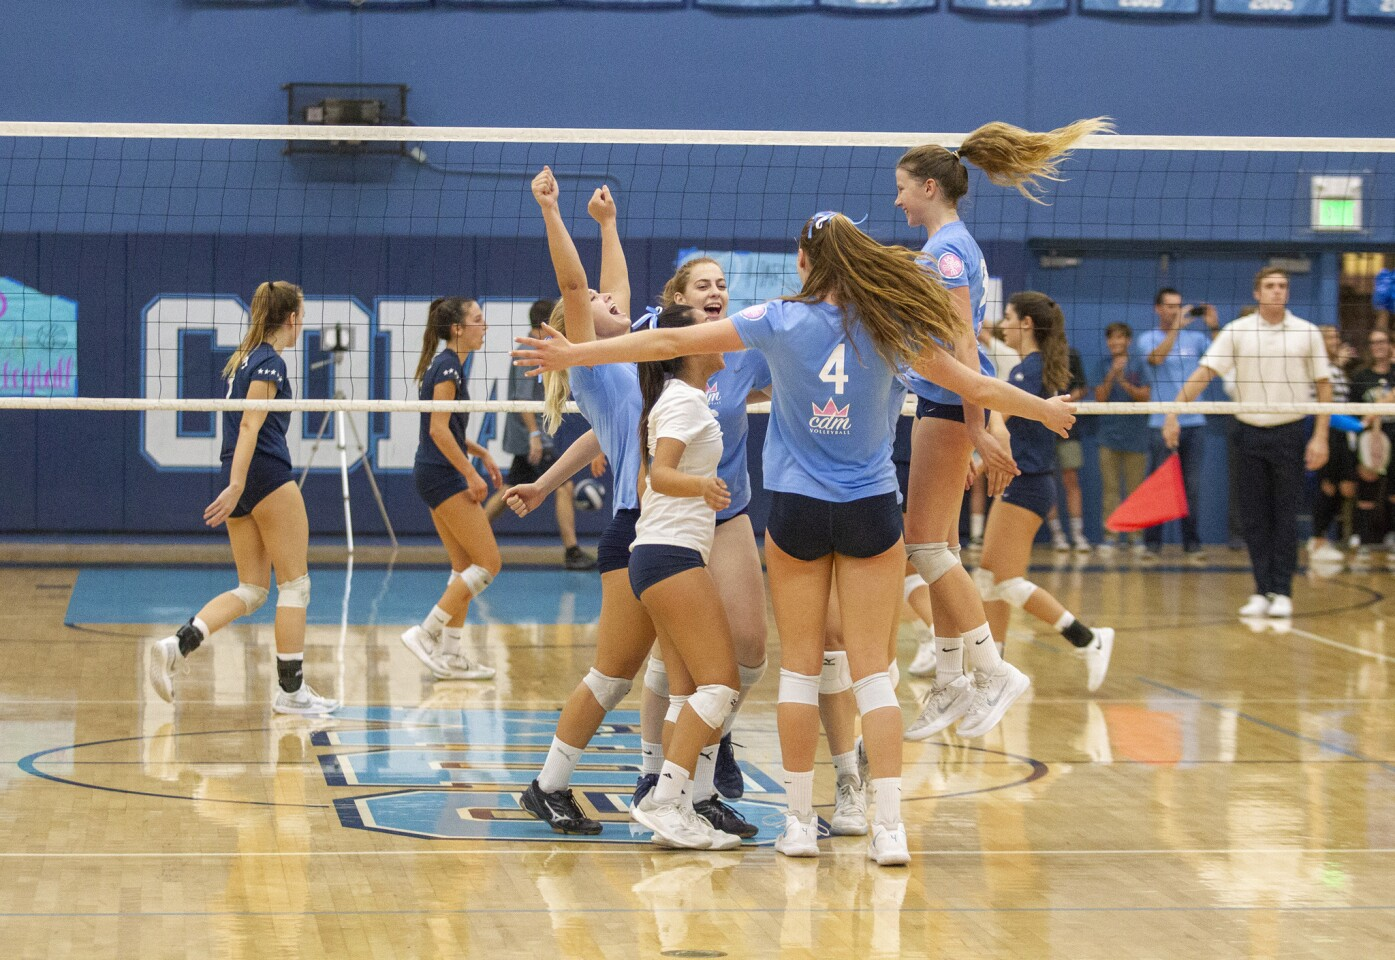 Photo Gallery: Newport Harbor vs. Corona del Mar in girls' volleyball